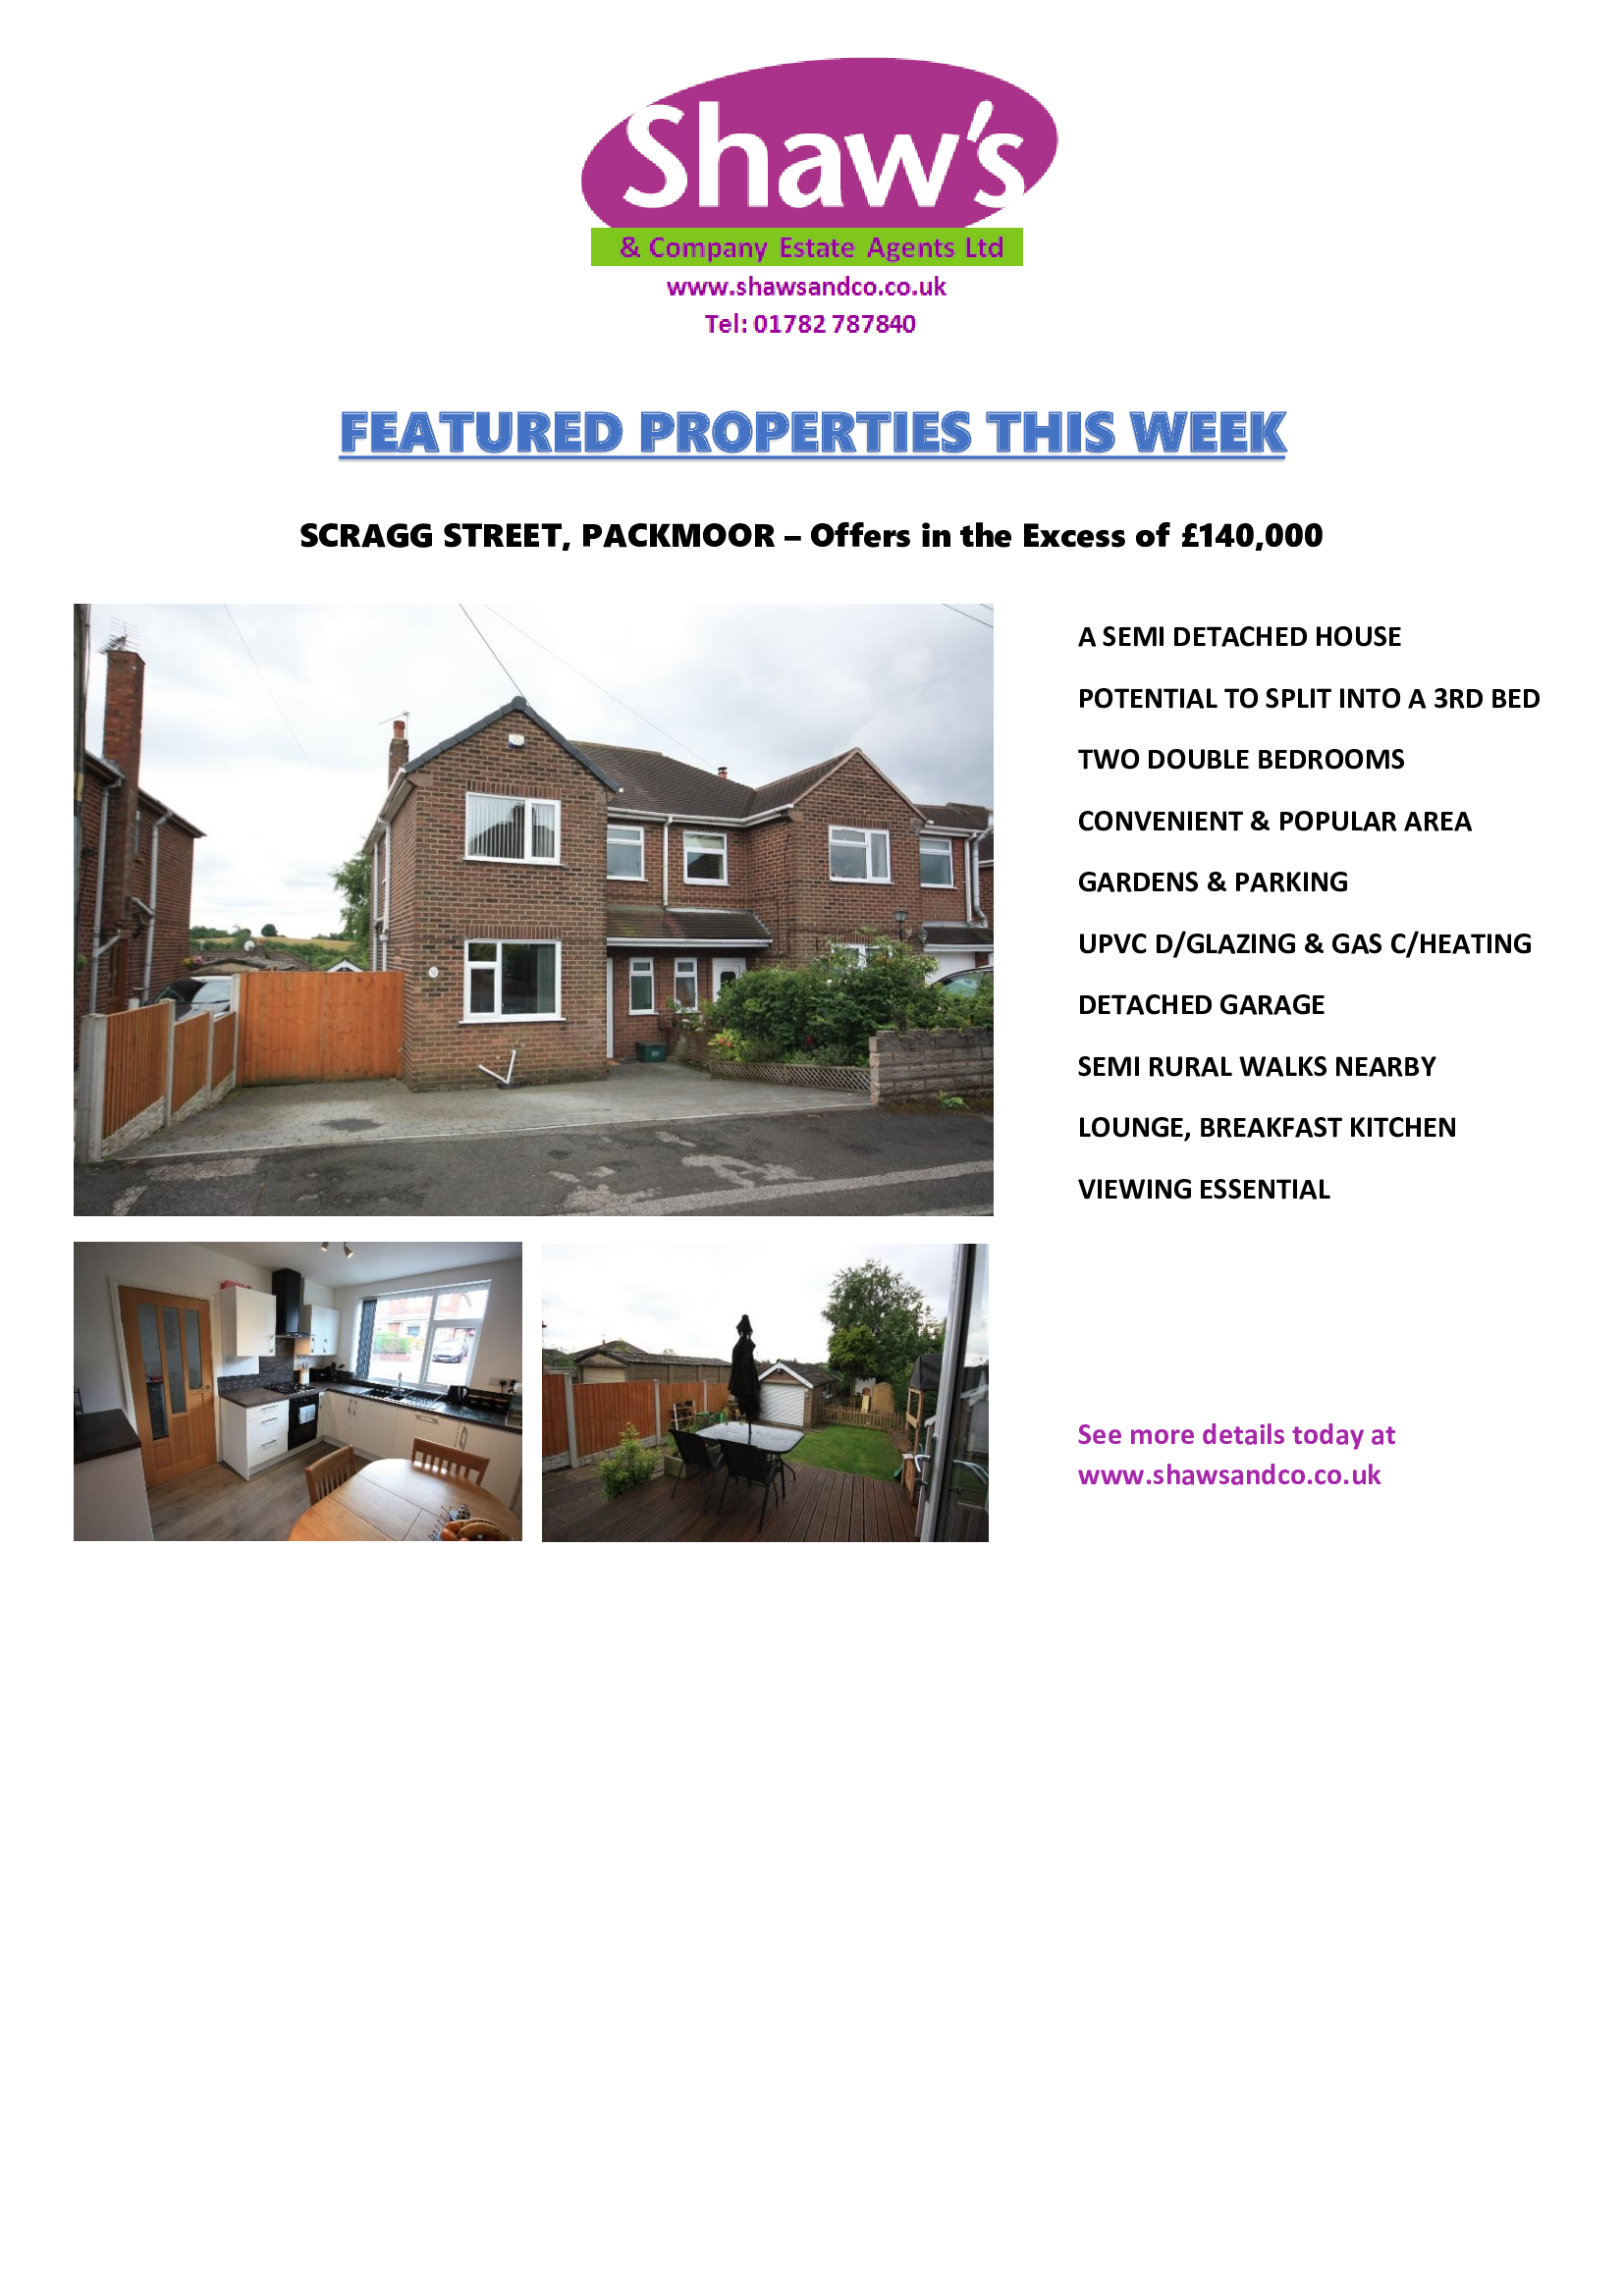 FEATURED PROPERTIES OF THE WEEK - DOUBLE EDITION!